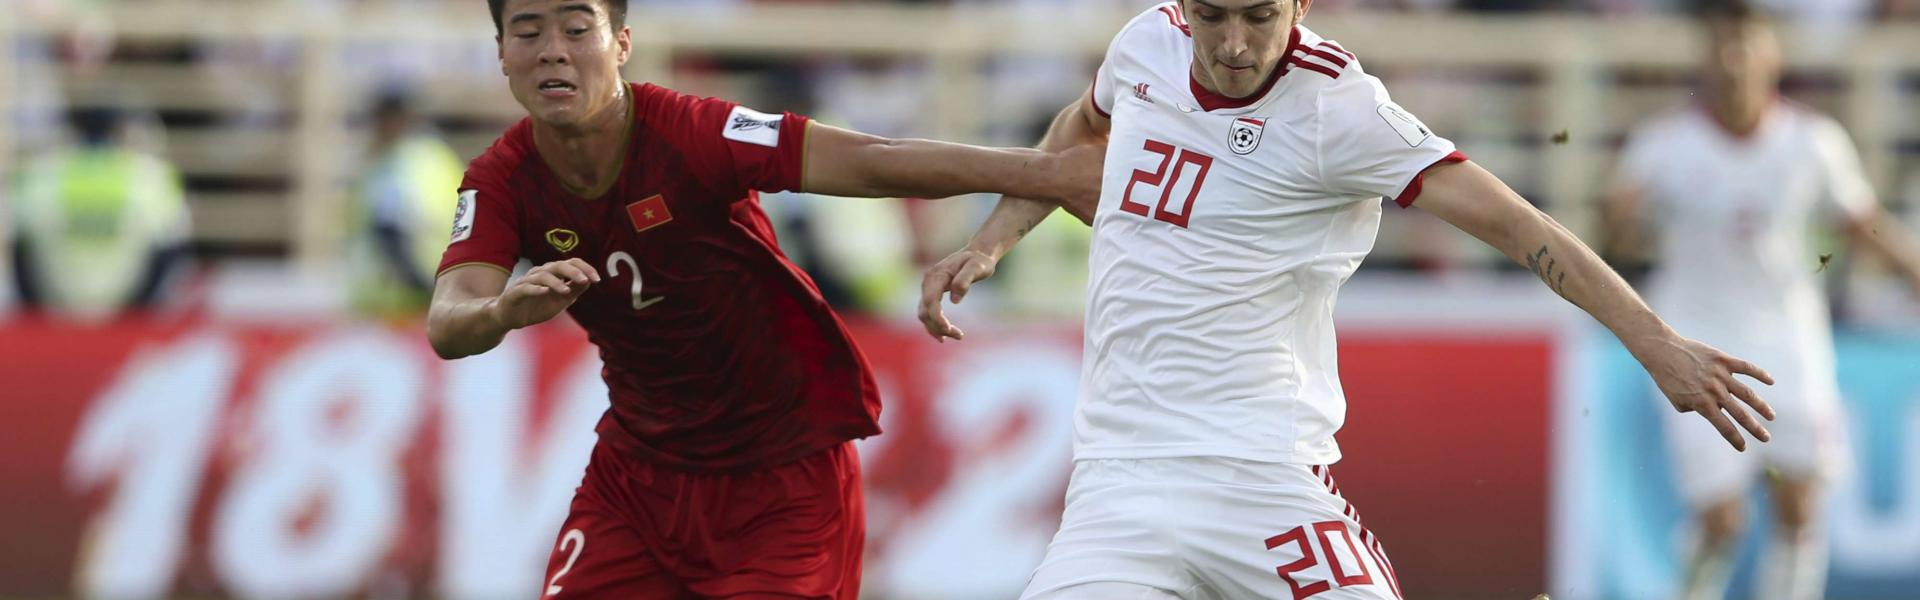 Azmoun, 24, quit the national team after fans rounded on him following Iran's exit at last year's World Cup